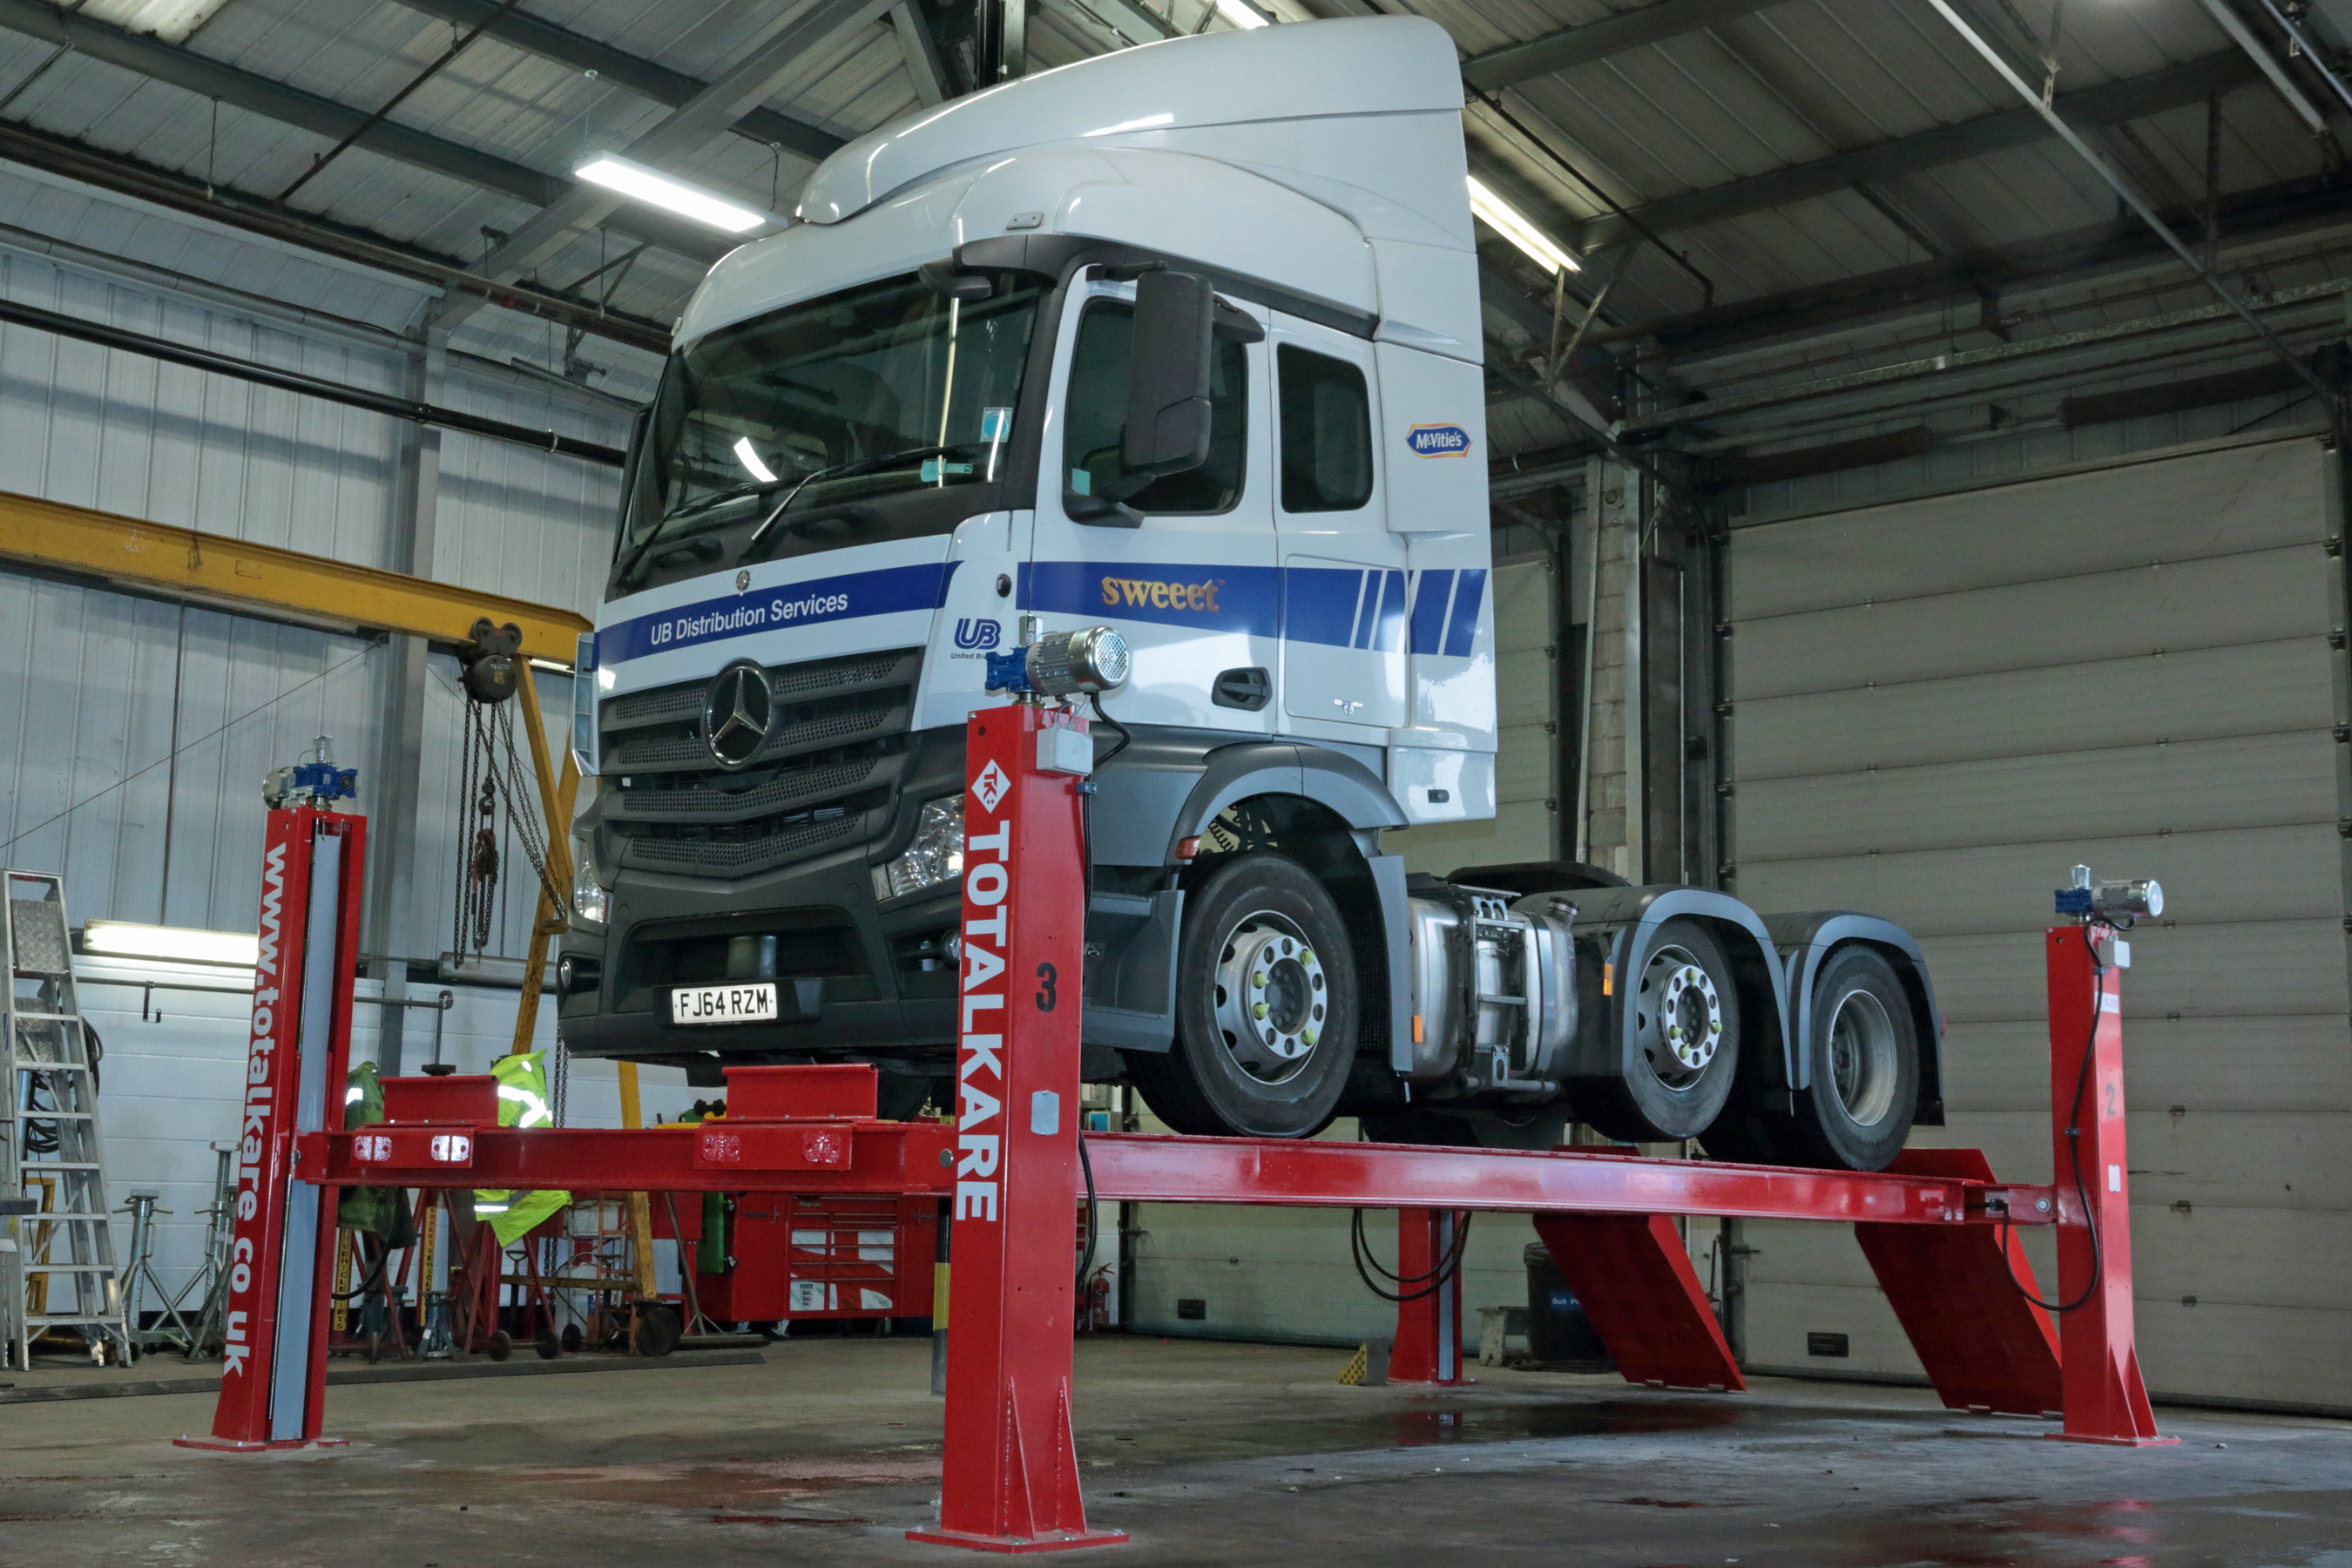 Used Car Lifts for Sale New 4 Post Vehicle Lifts for Sale Vehicle Lift Supplier